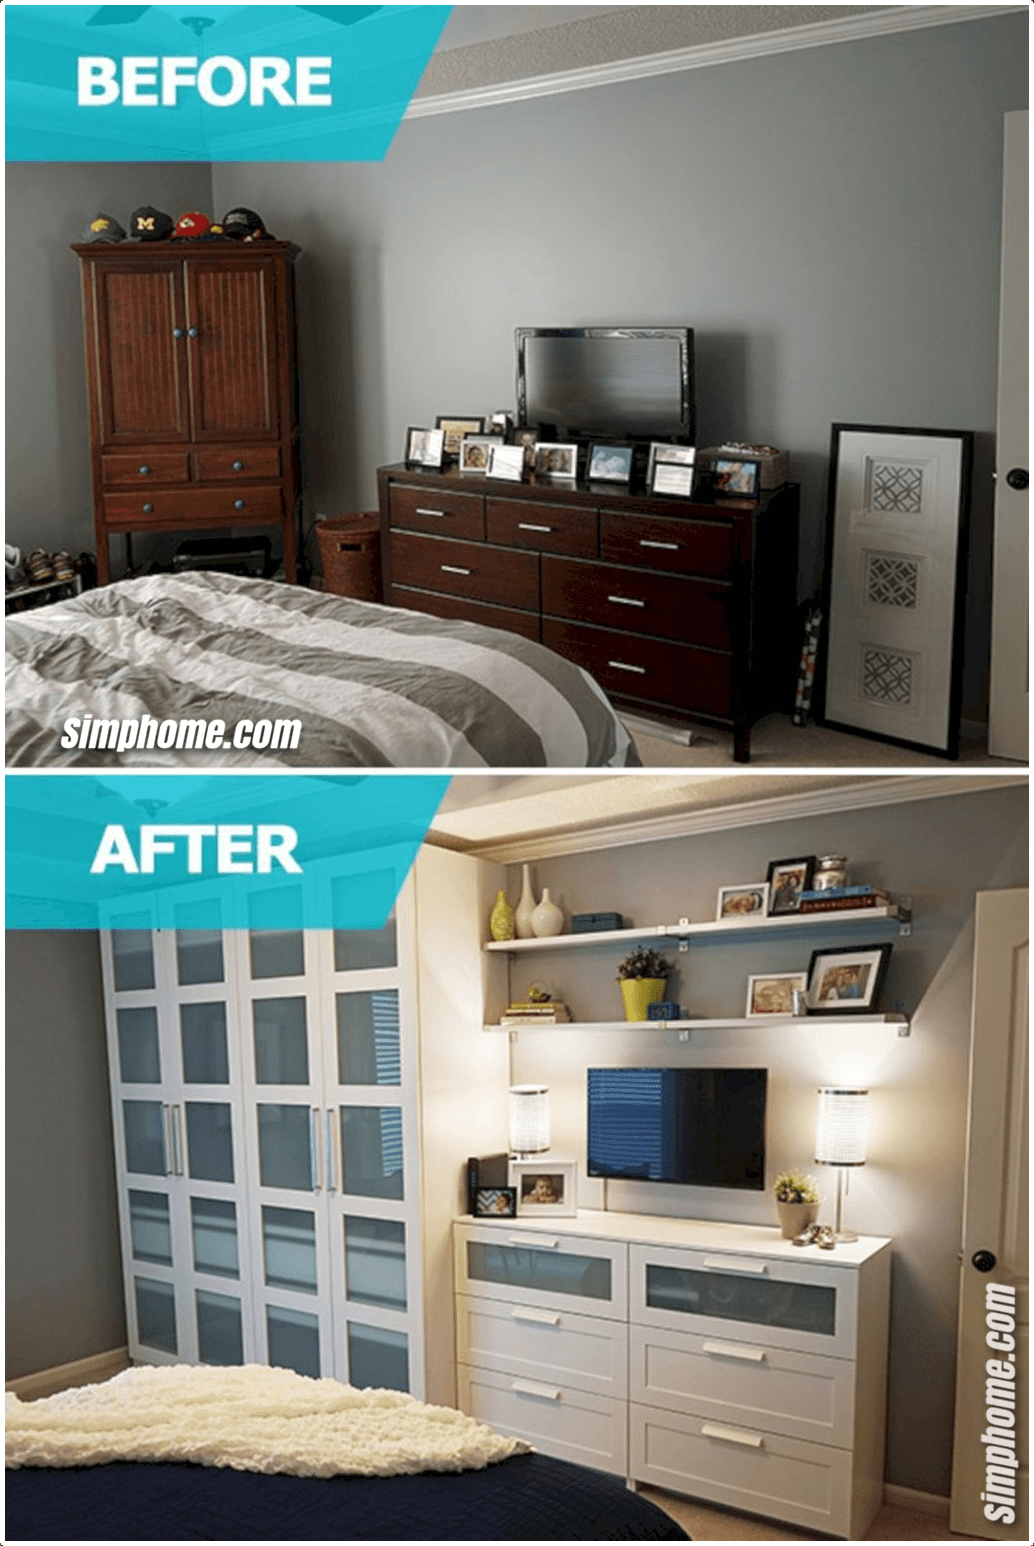 Simphome.com the best bedroom storage ideas for small room spaces